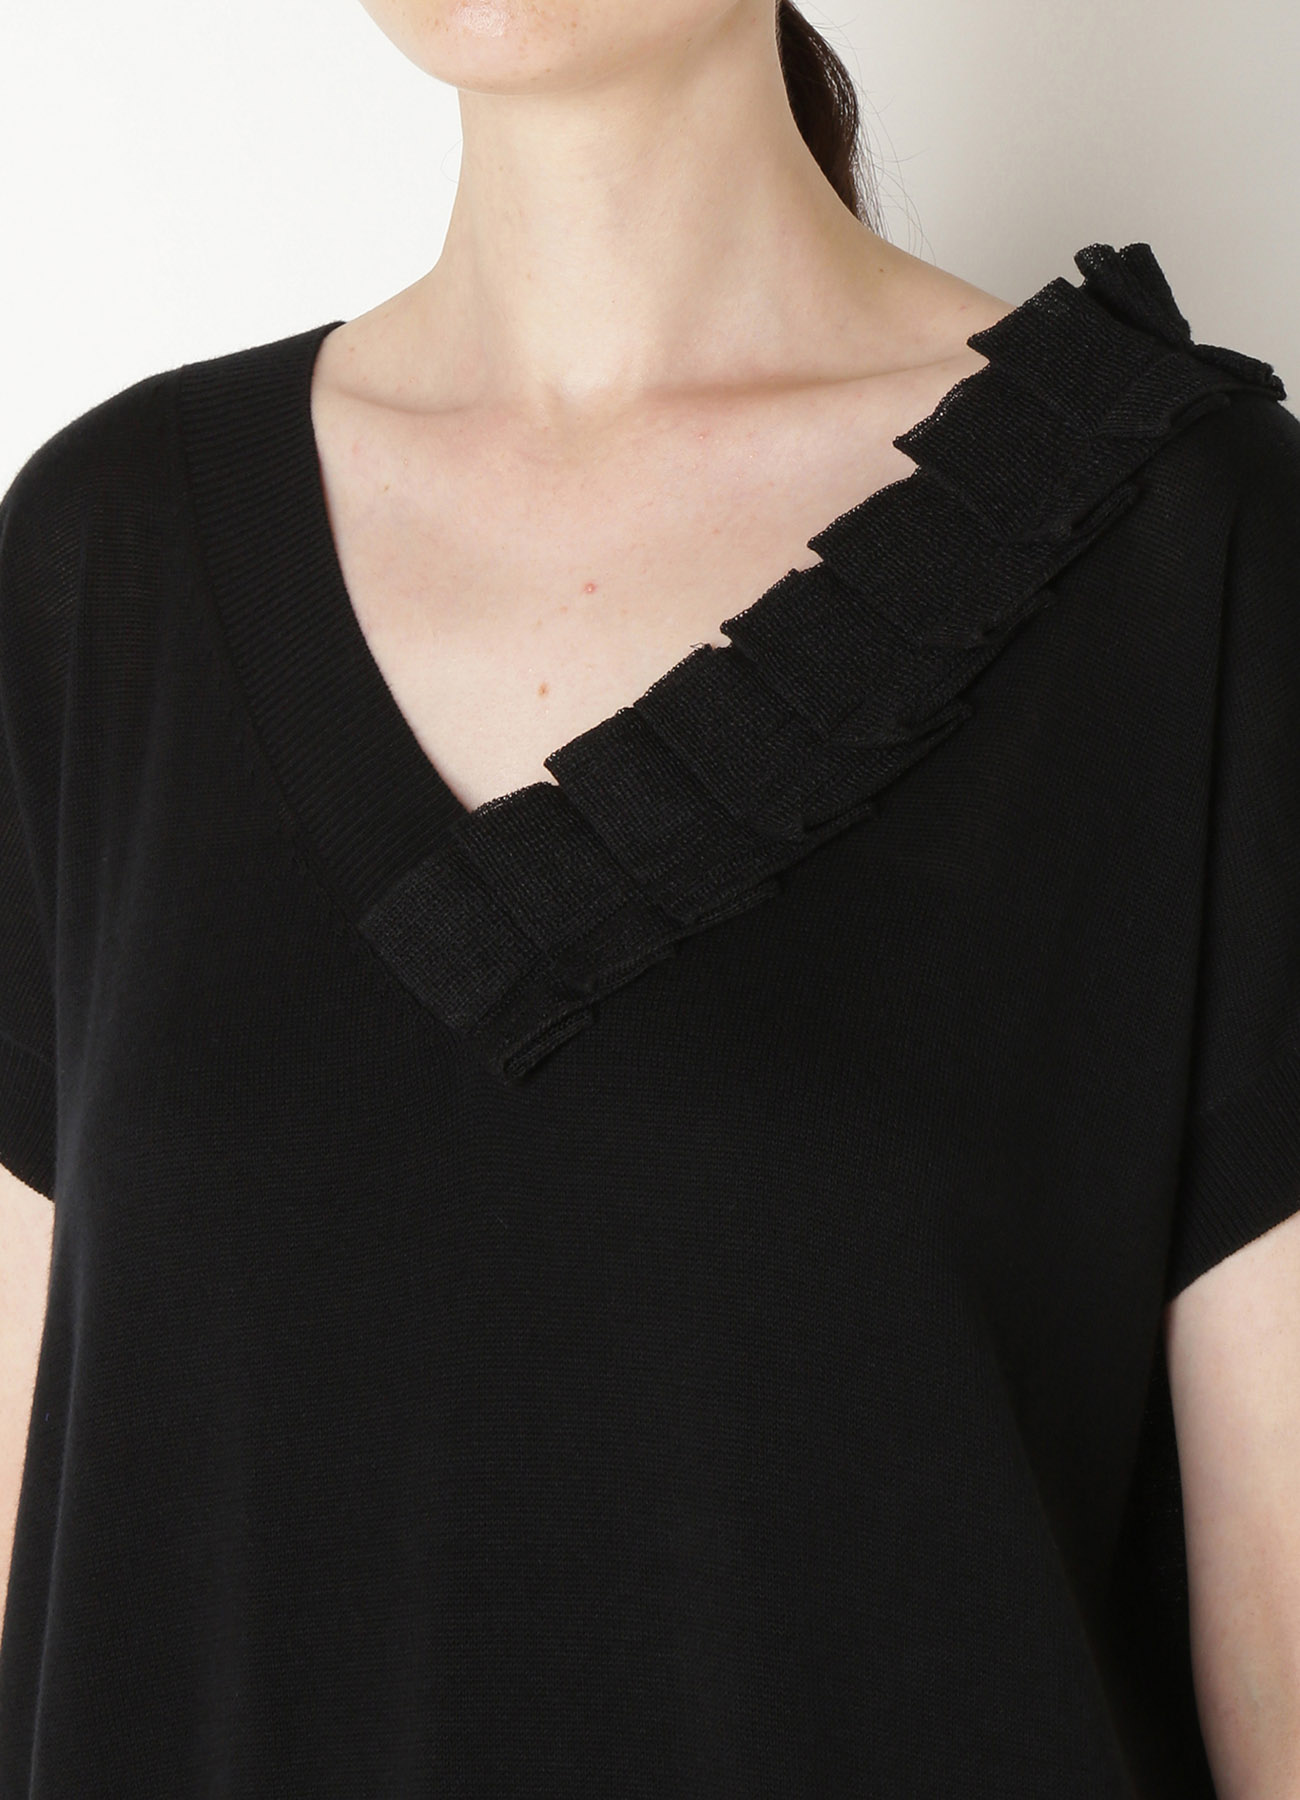 12G2P PS x PLEATS PLEATS COLLAR OP